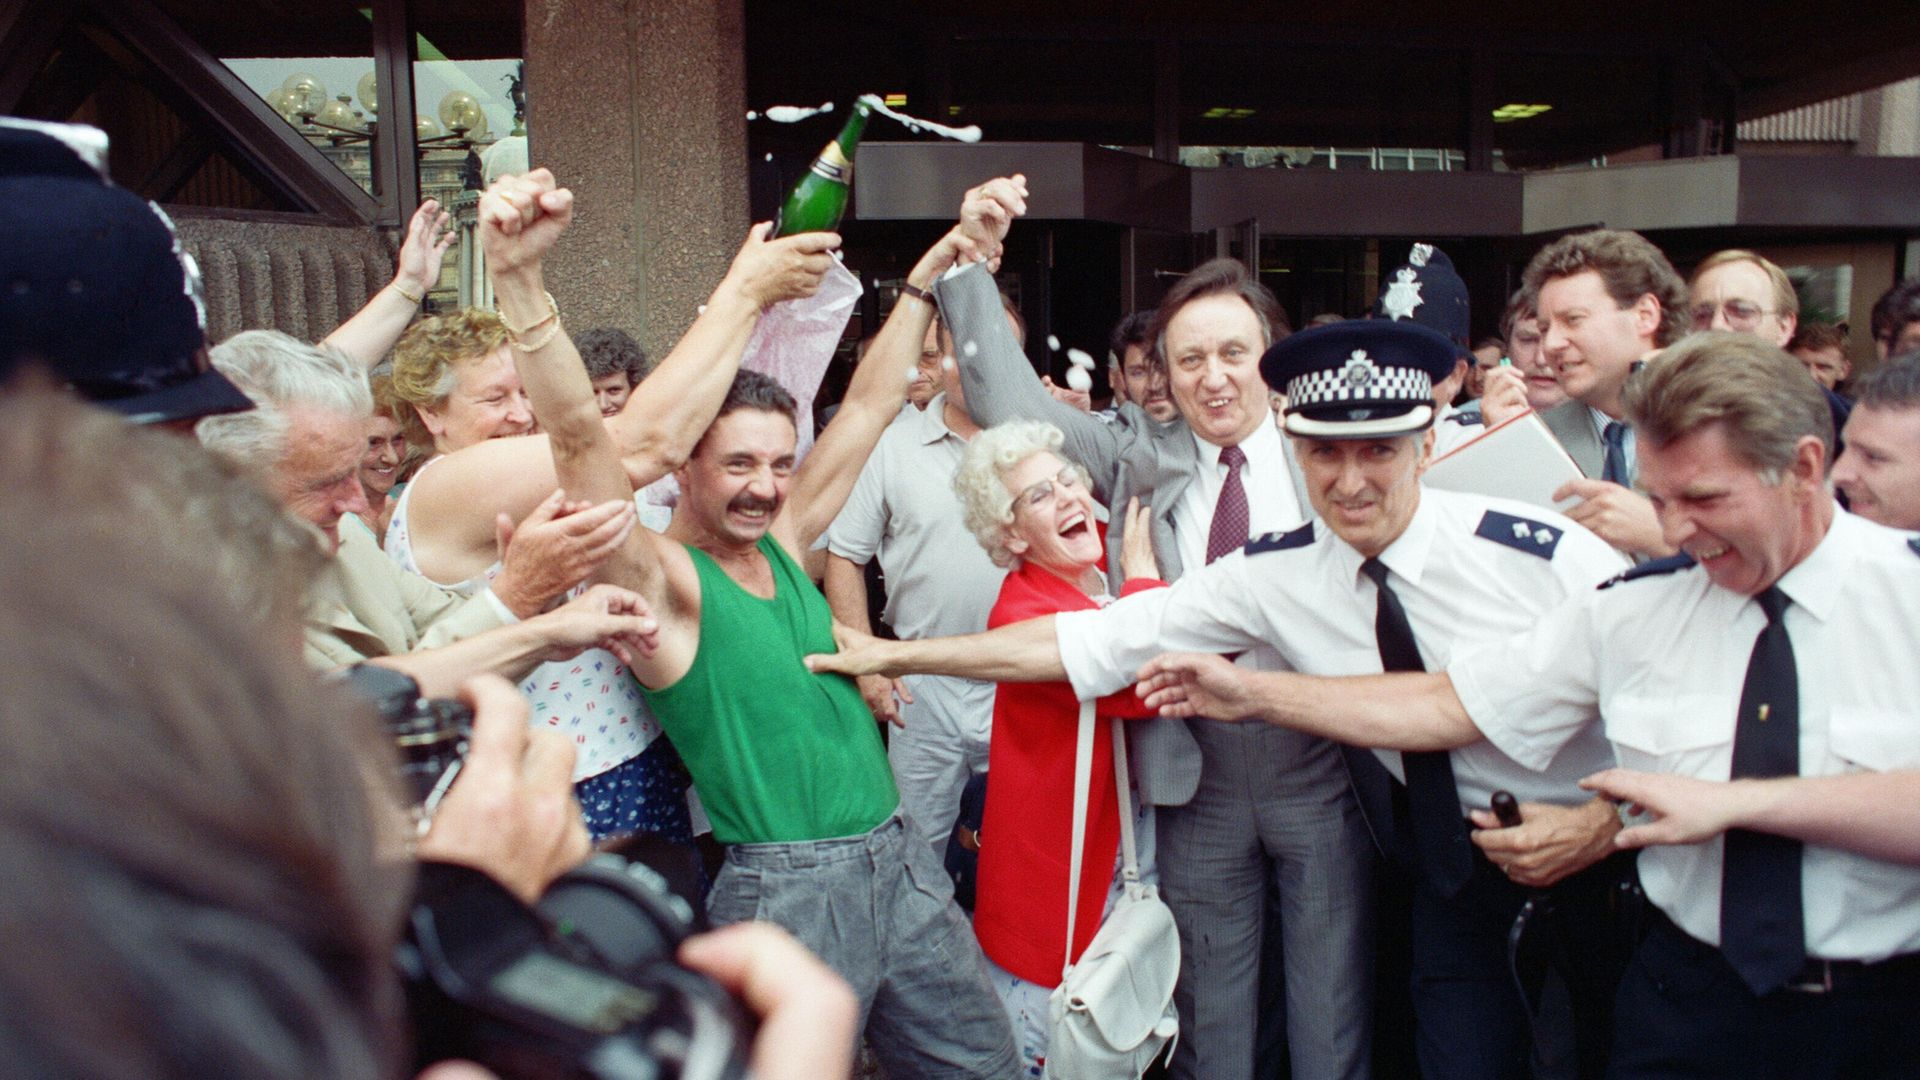 Comedian Ken Dodd celebrates with supporters after being acquitted of tax evasion charges at Liverpool Crown Court - Credit: Getty Images